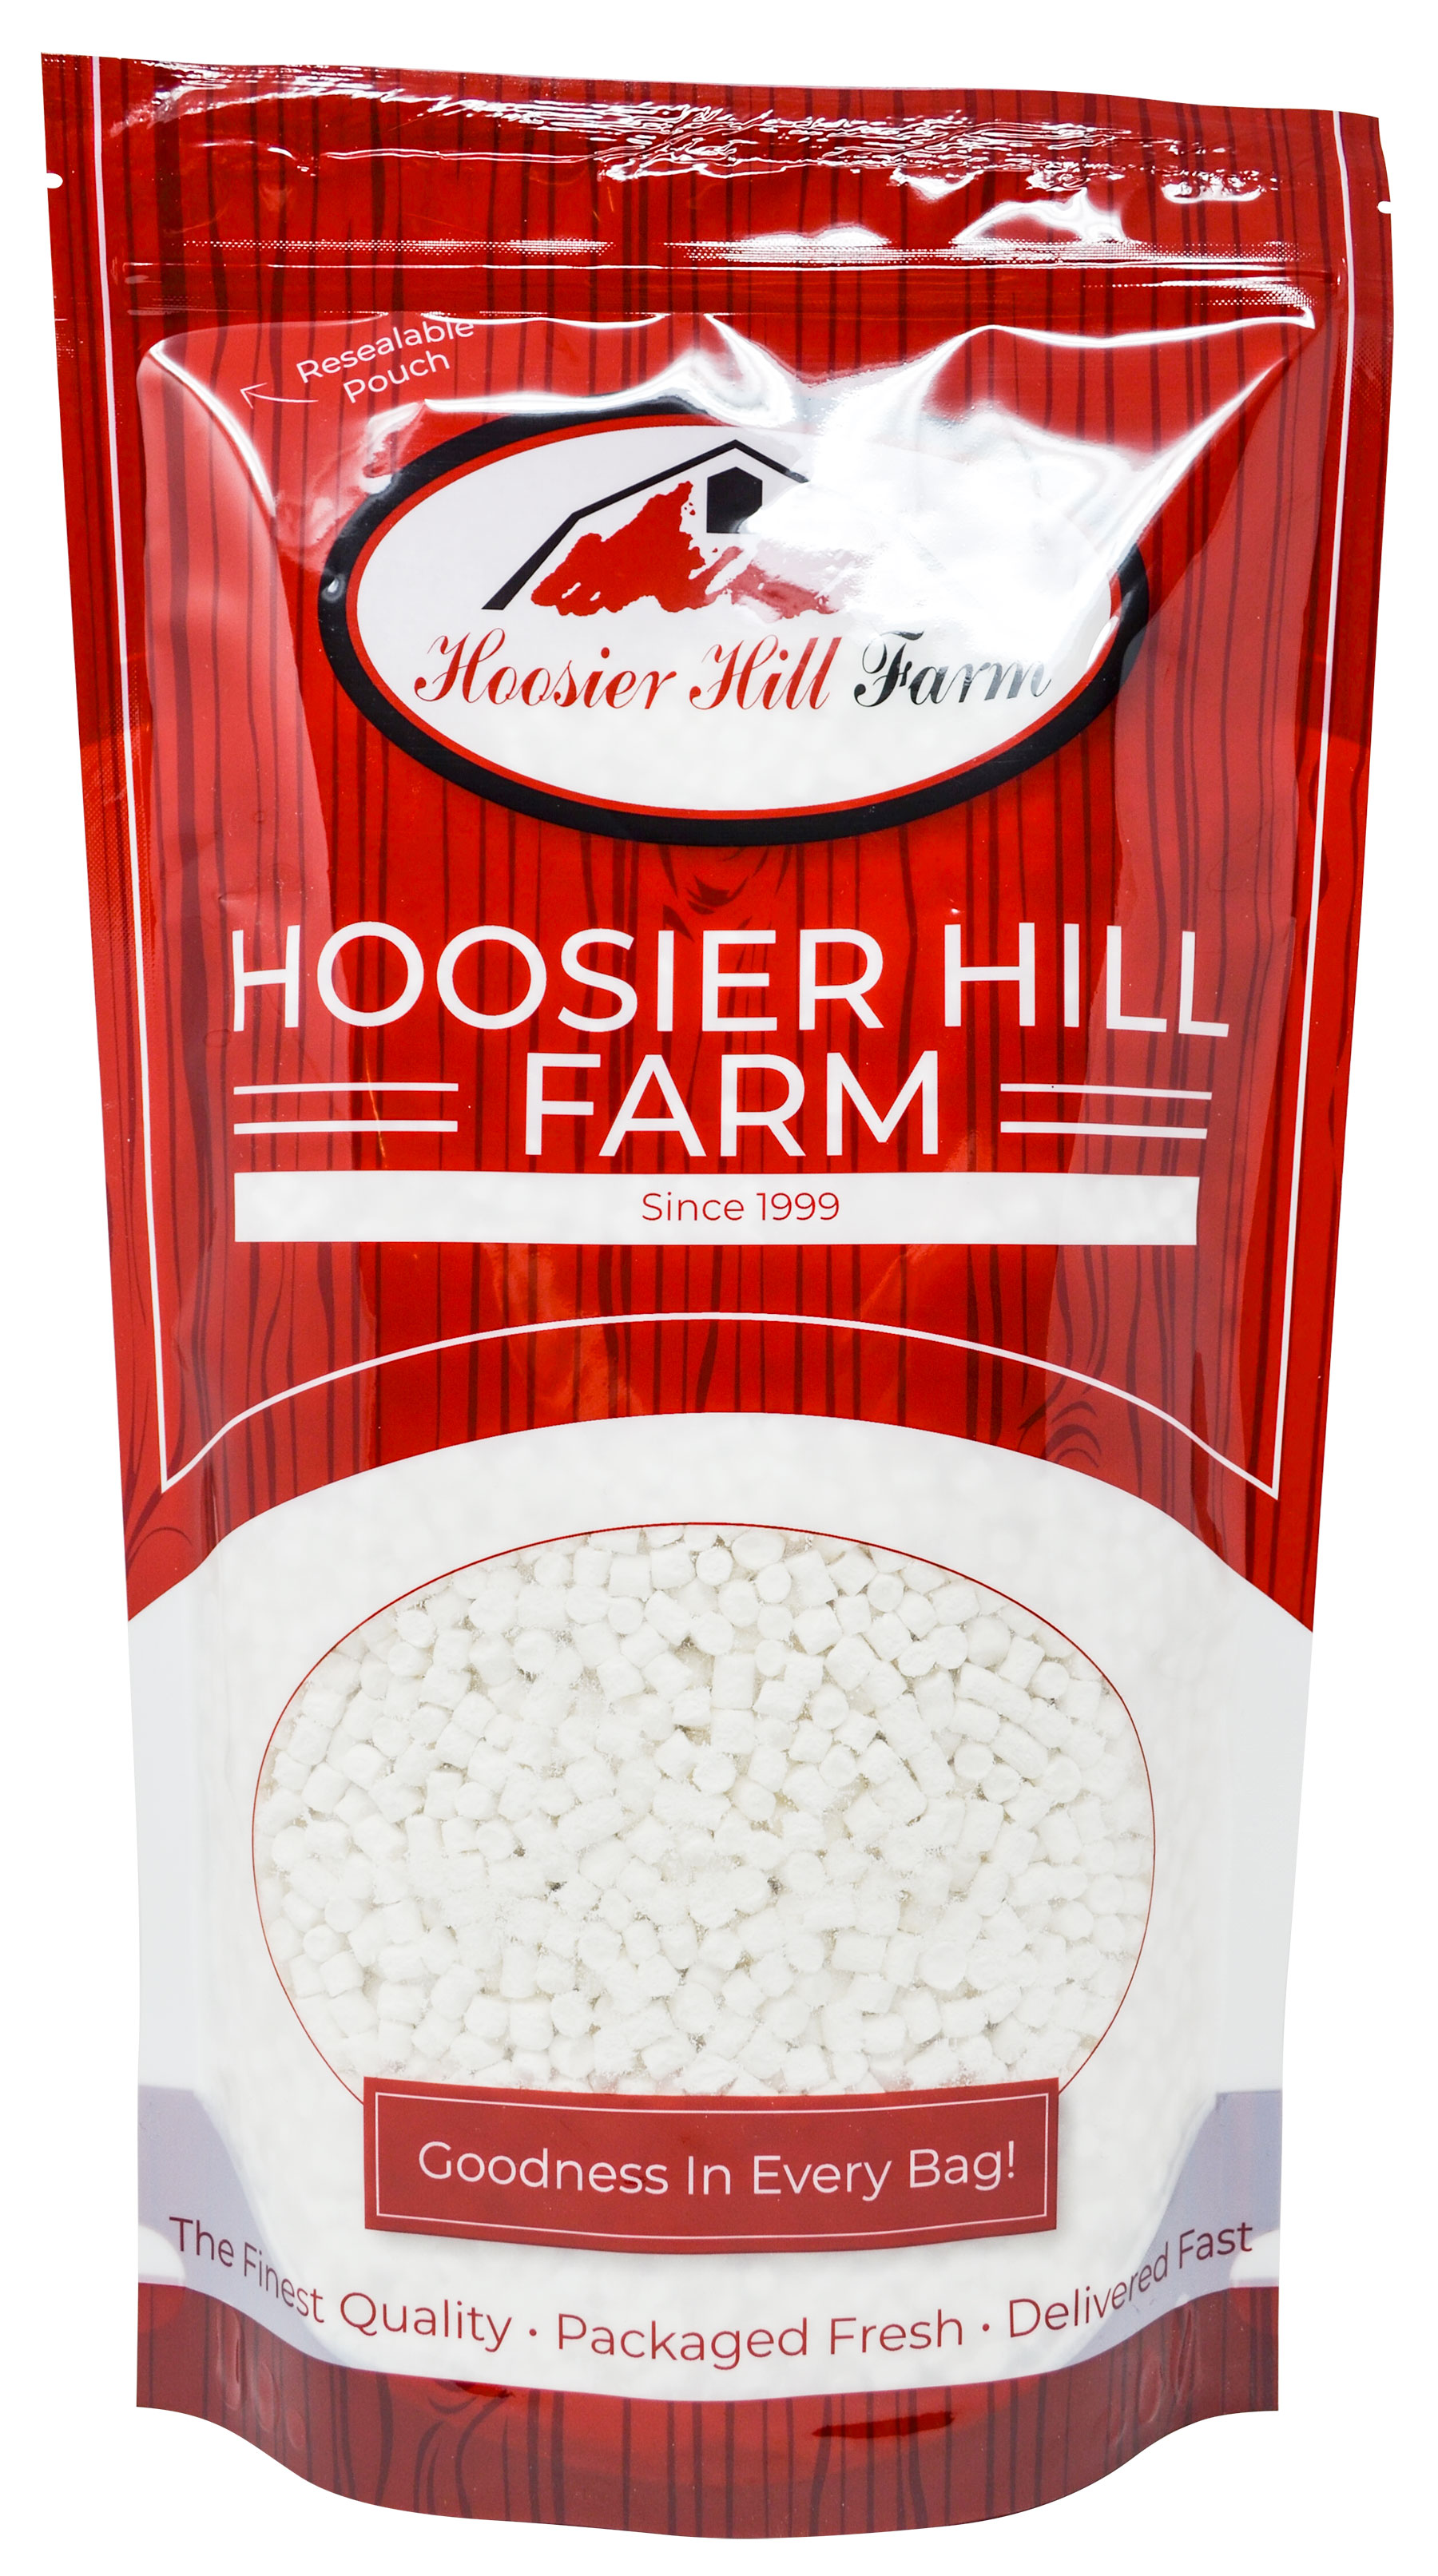 Hoosier Hill Farm Mini Dehydrated Marshmallows (3 lbs)